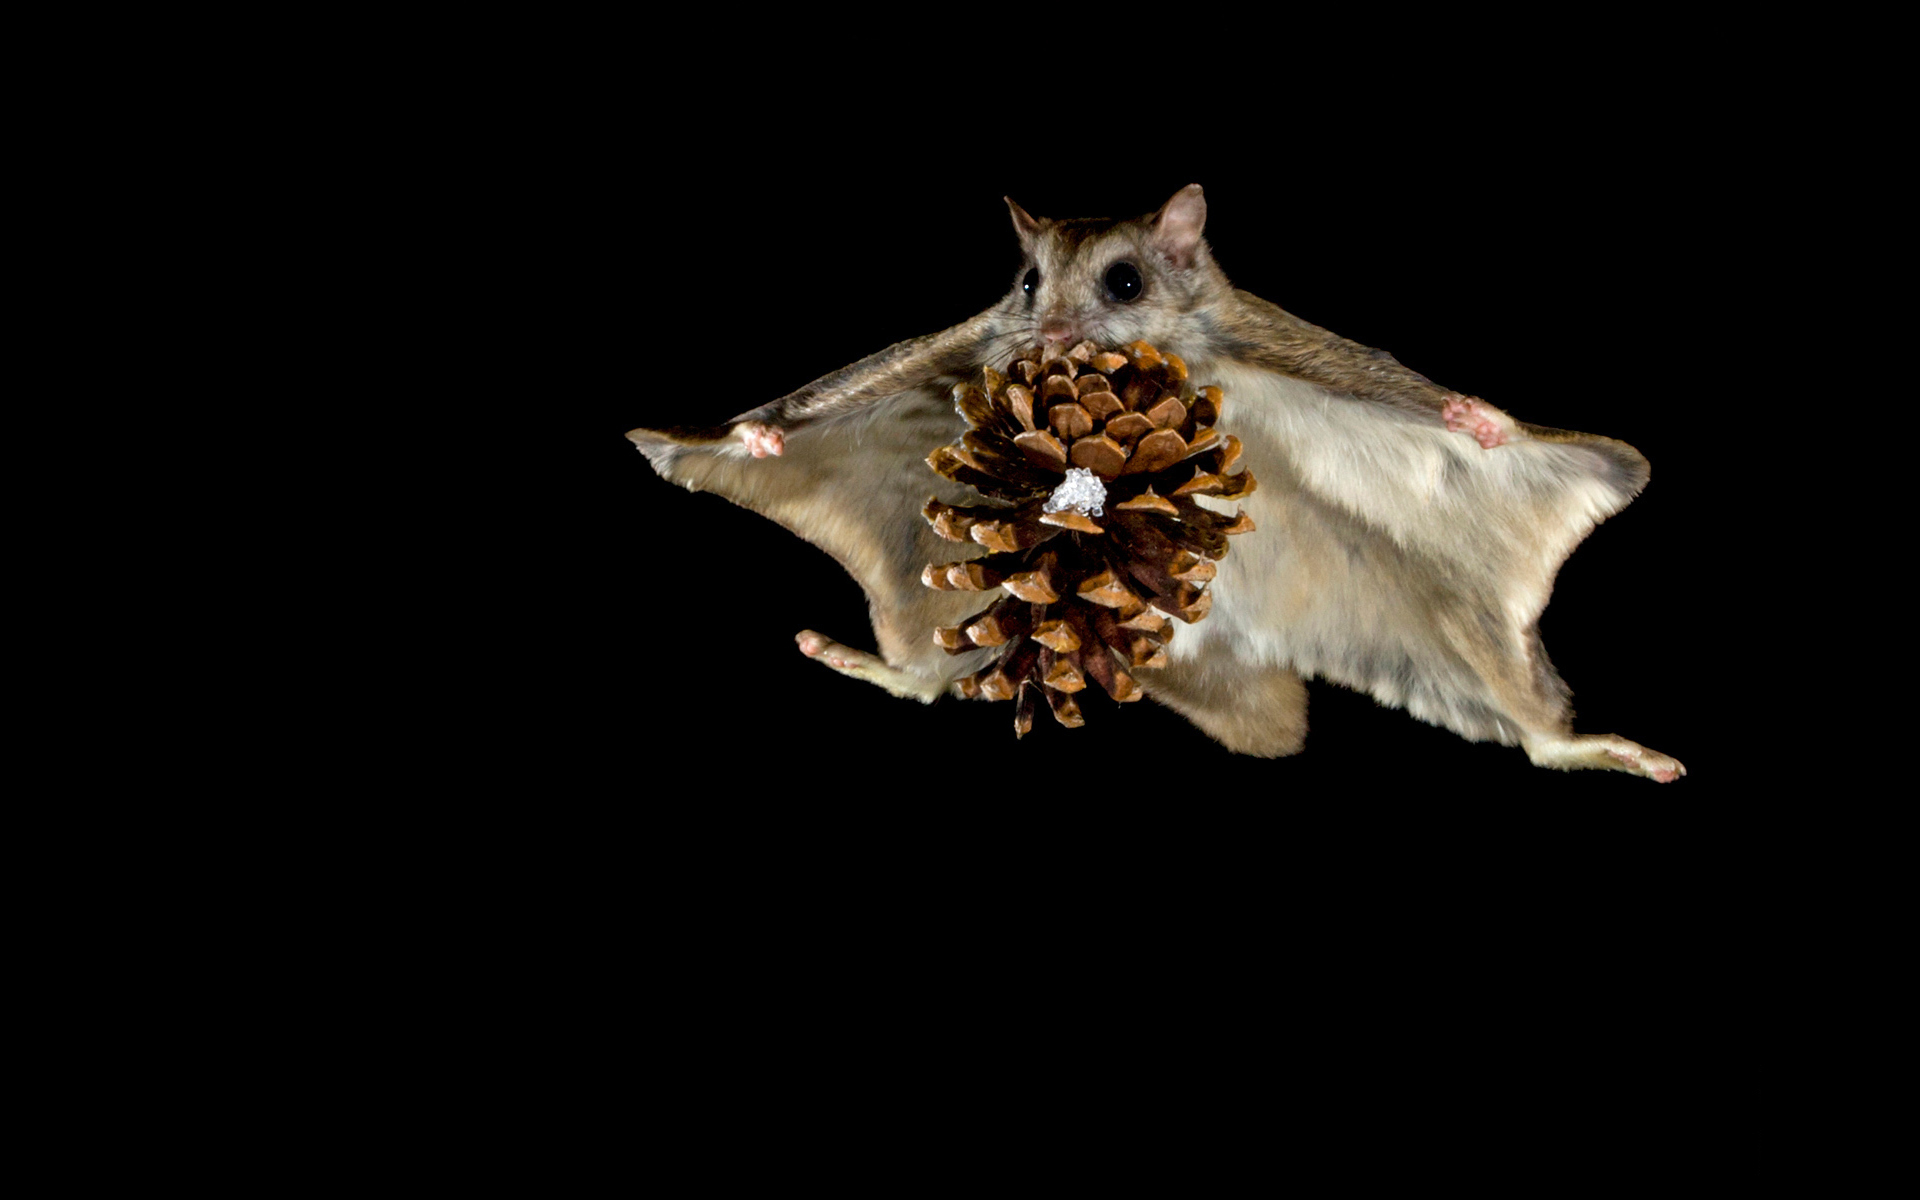 44116 download wallpaper Mice, Cones, Objects screensavers and pictures for free